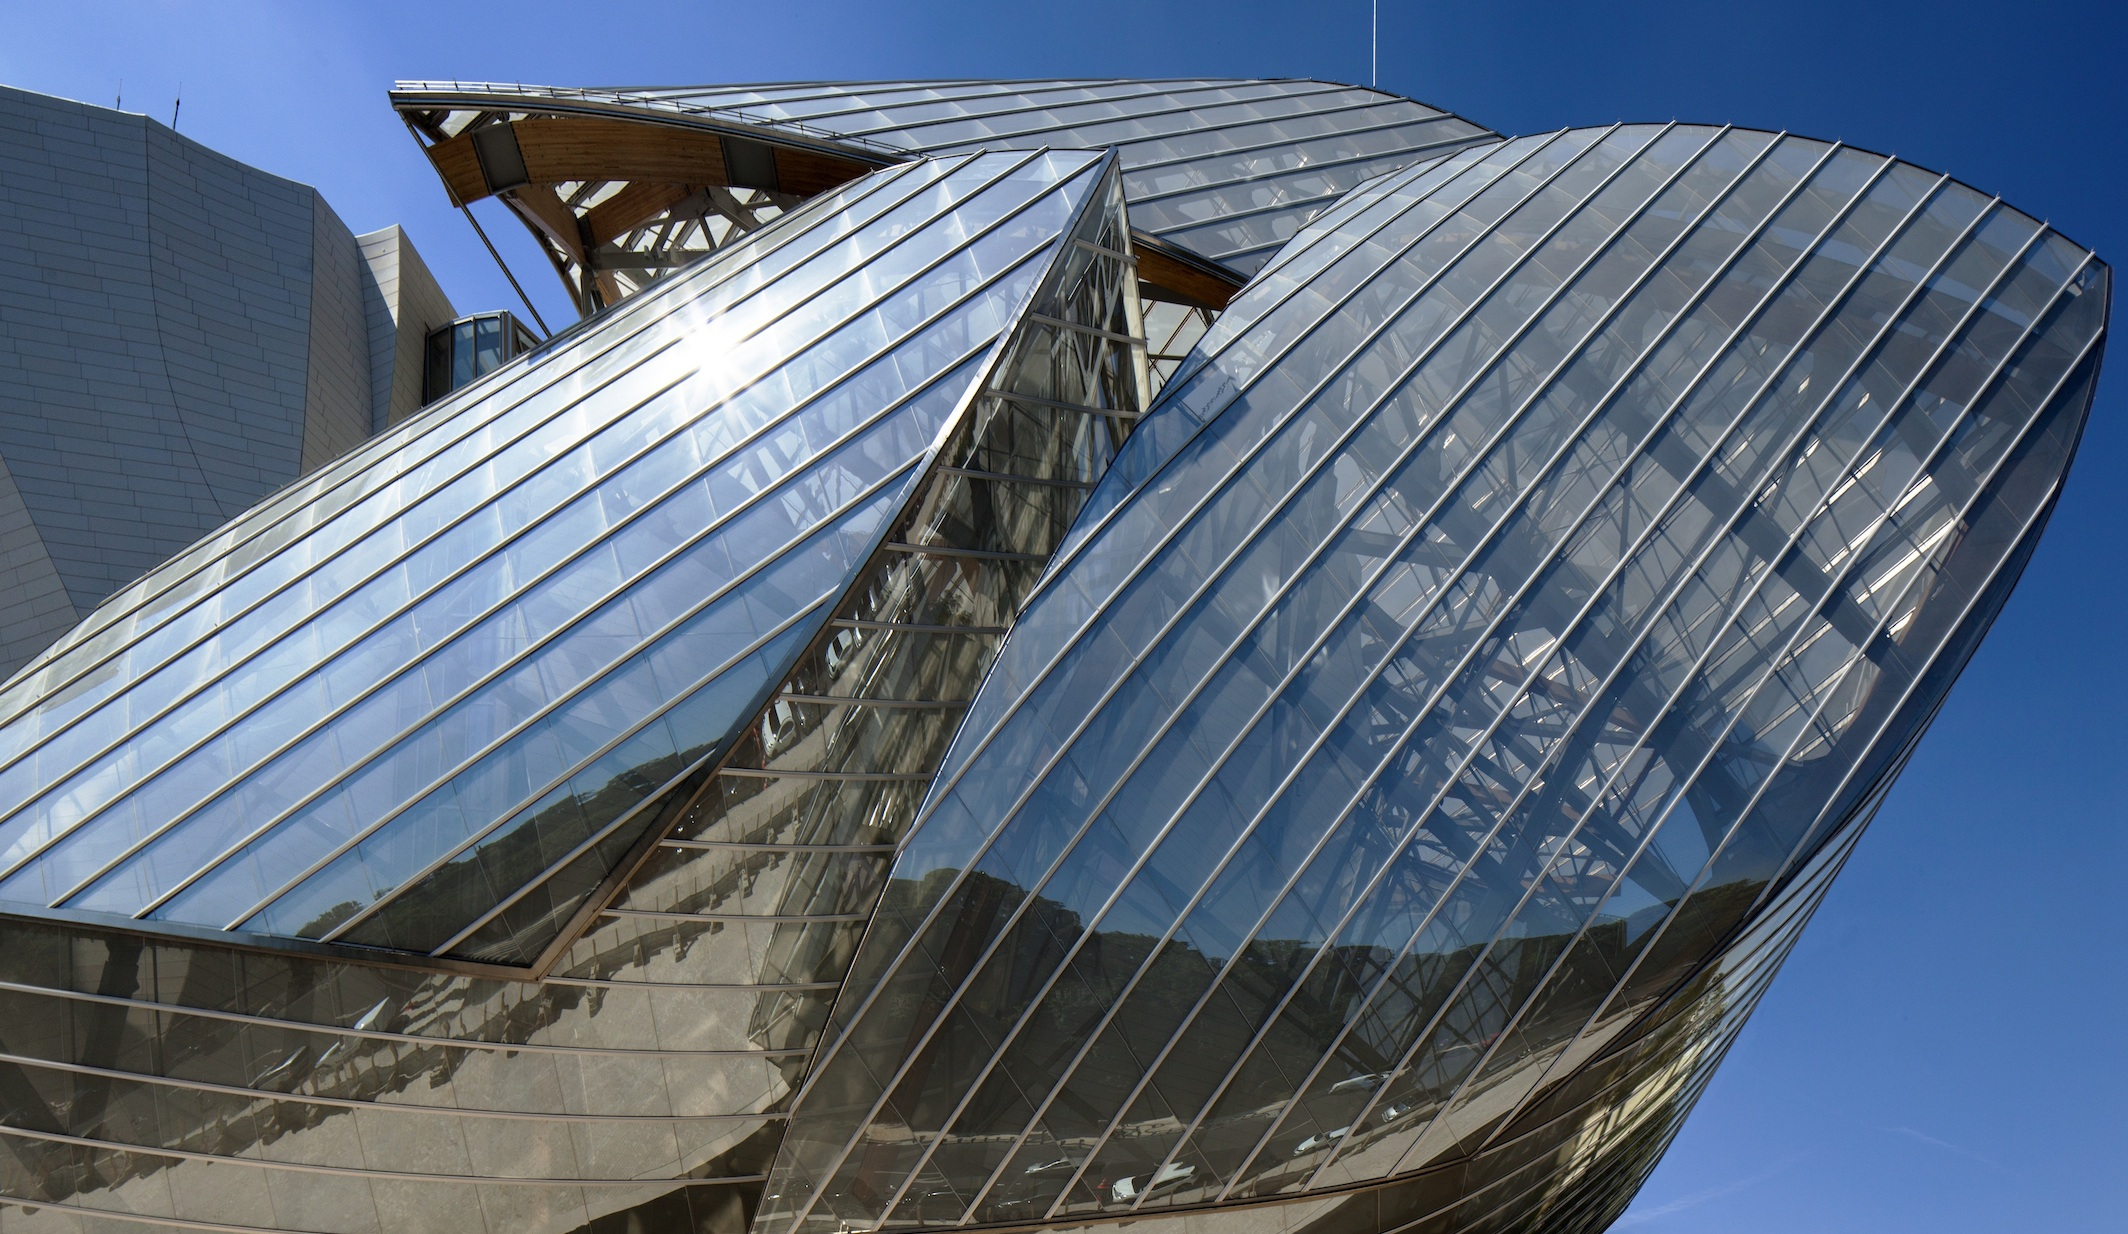 Fondation Louis Vuitton: Gehry's glass cloud